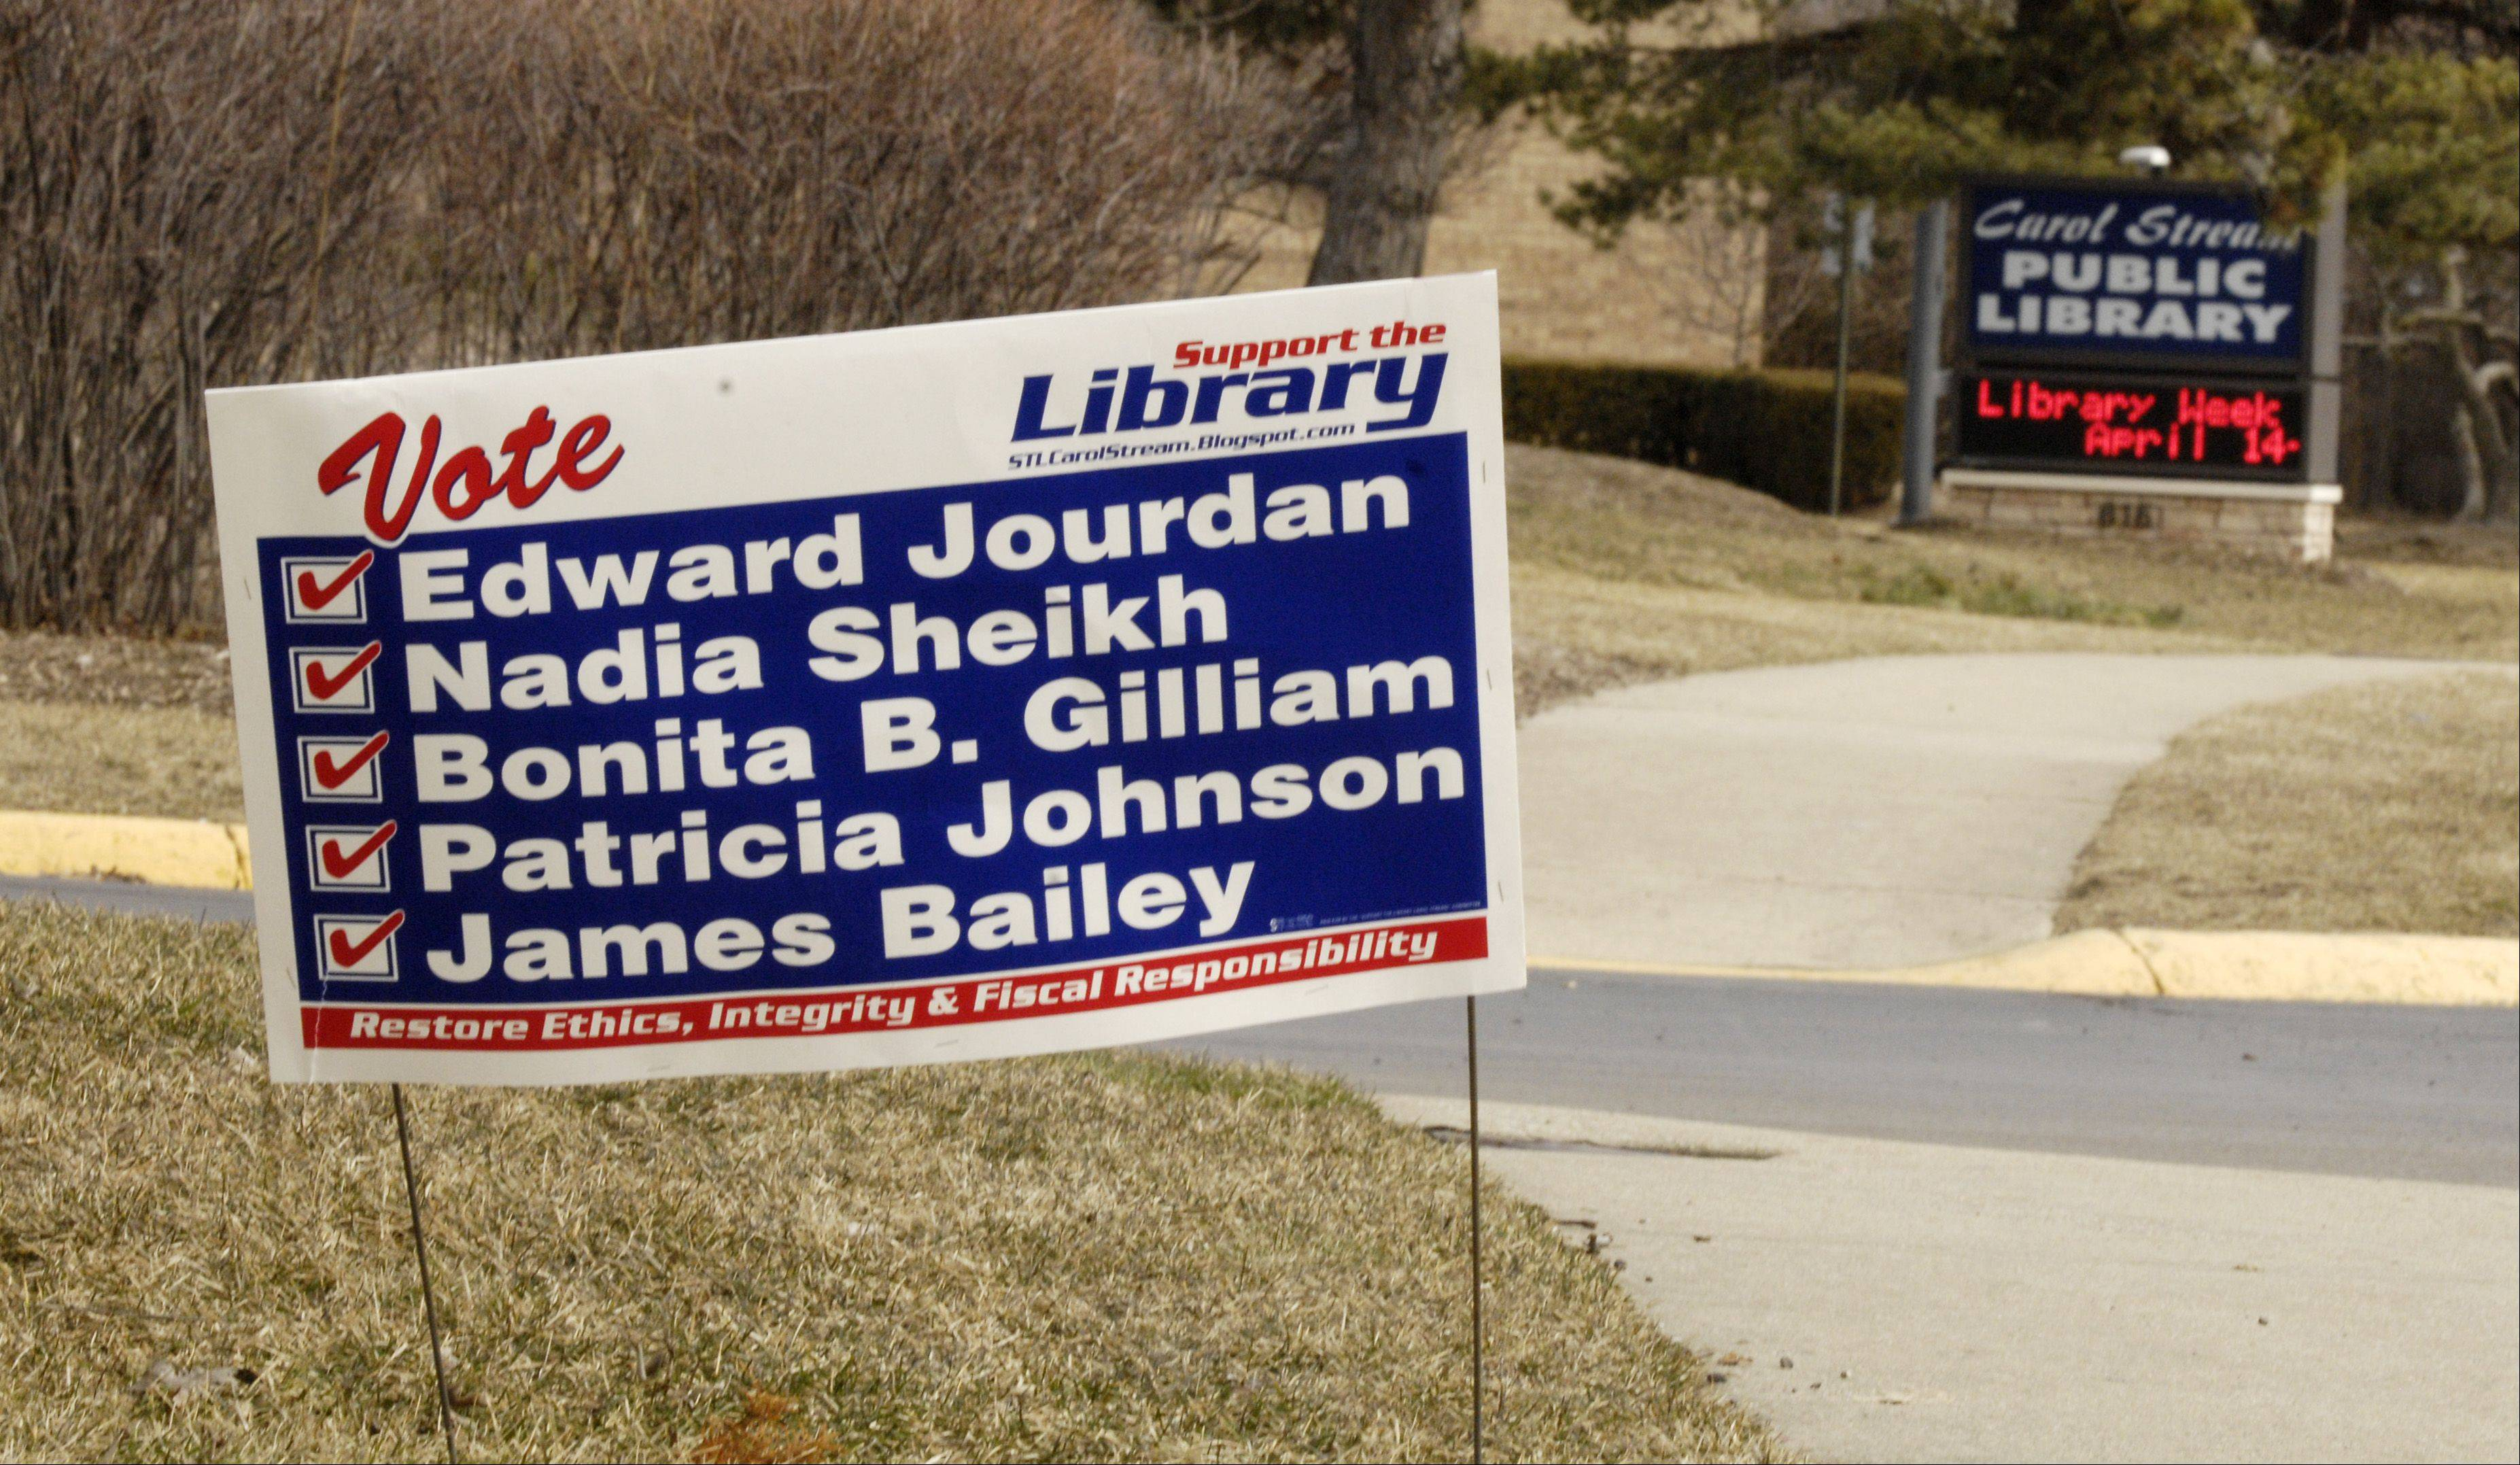 A home adjacent to the Carol Stream Public Library has posted a campaign sign for the Support the Library slate of candidates.